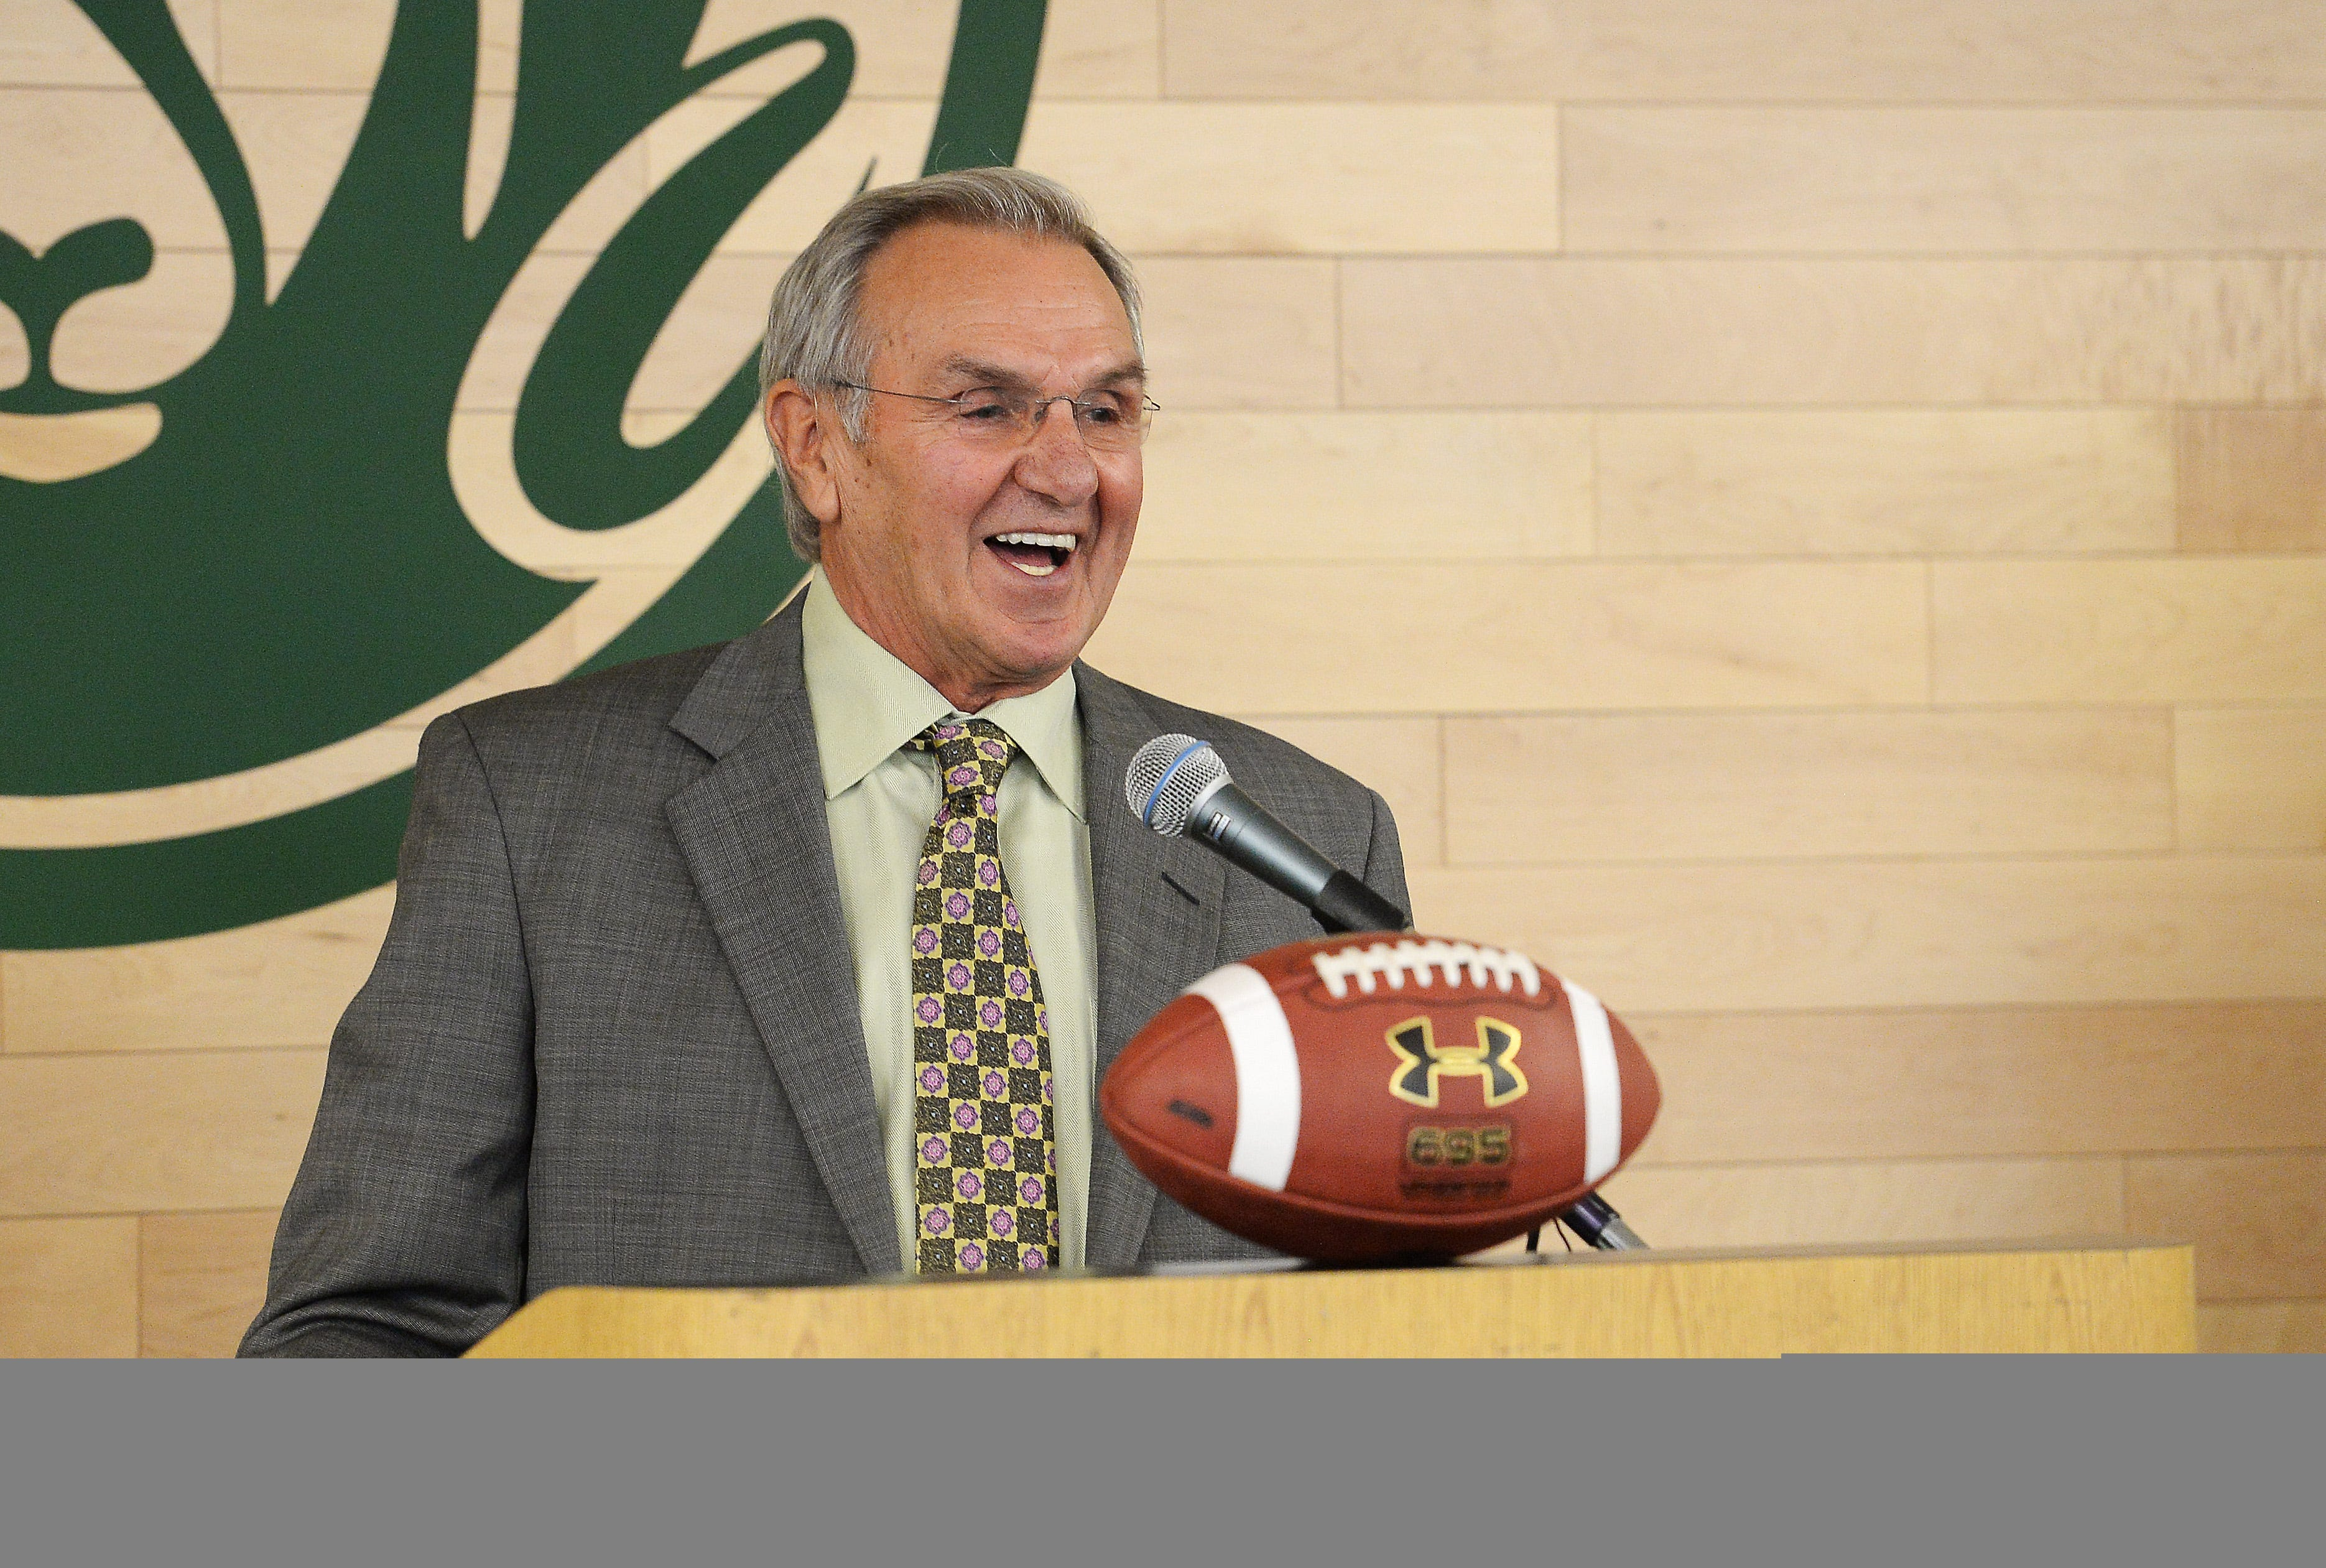 In 2015, CSU announced it would change the moniker of its on-campus stadium field to bear Sonny Lubick's name.